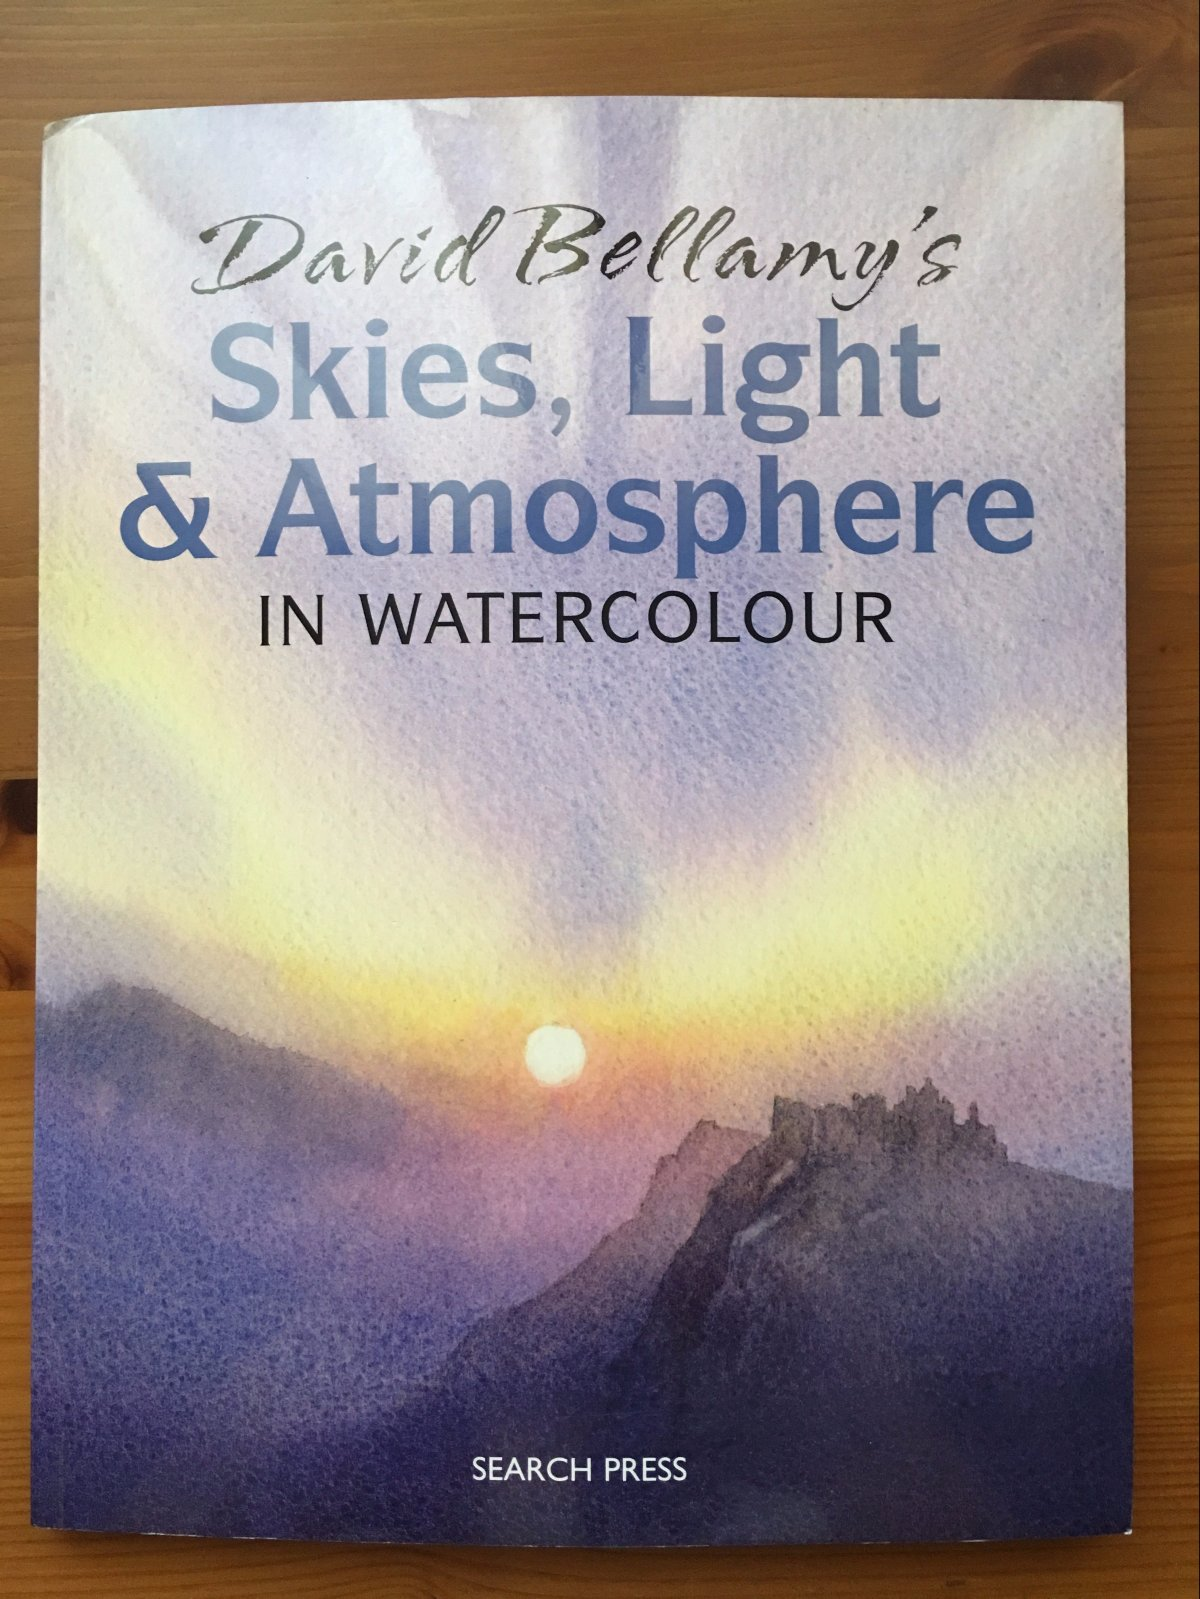 David Bellamy's skies, light & atmosphere in watercolour painting